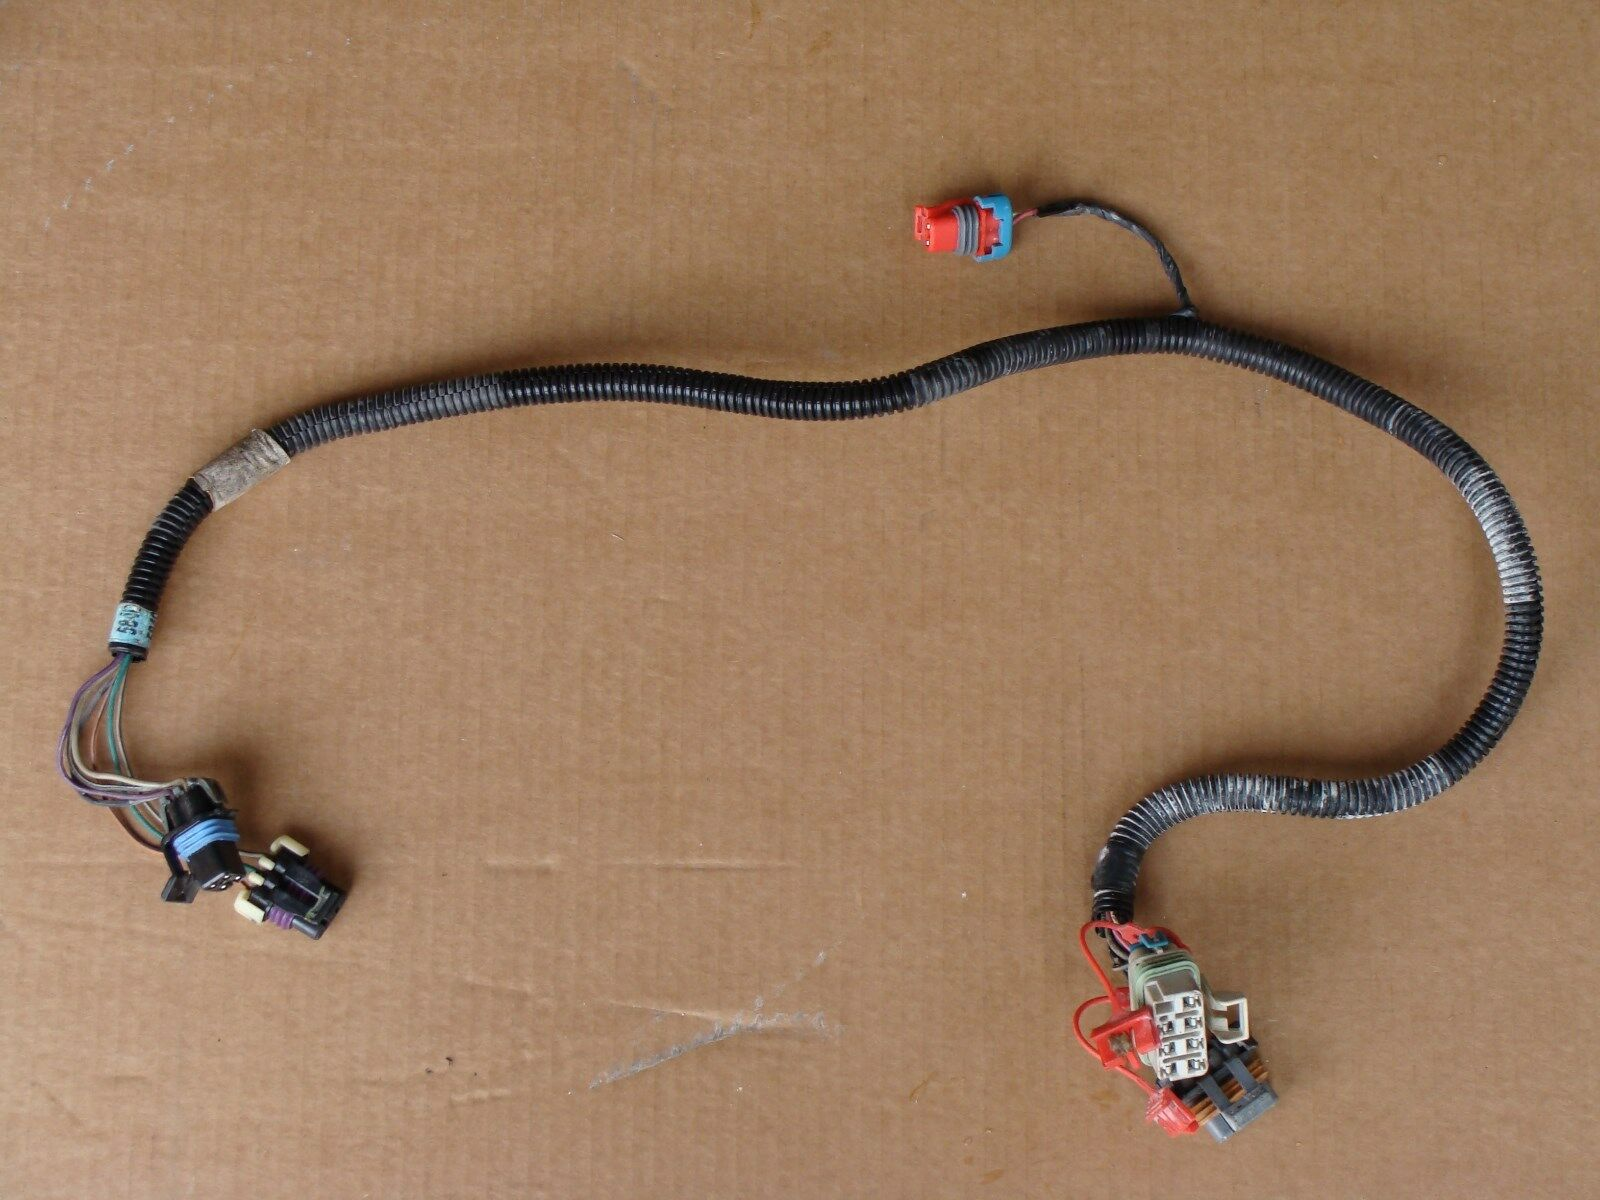 99 02 Ls1 38 V6 Camaro Firebird Trans Am Fuel Pump Wiring Harness 1 Of 1only 2 Available See More